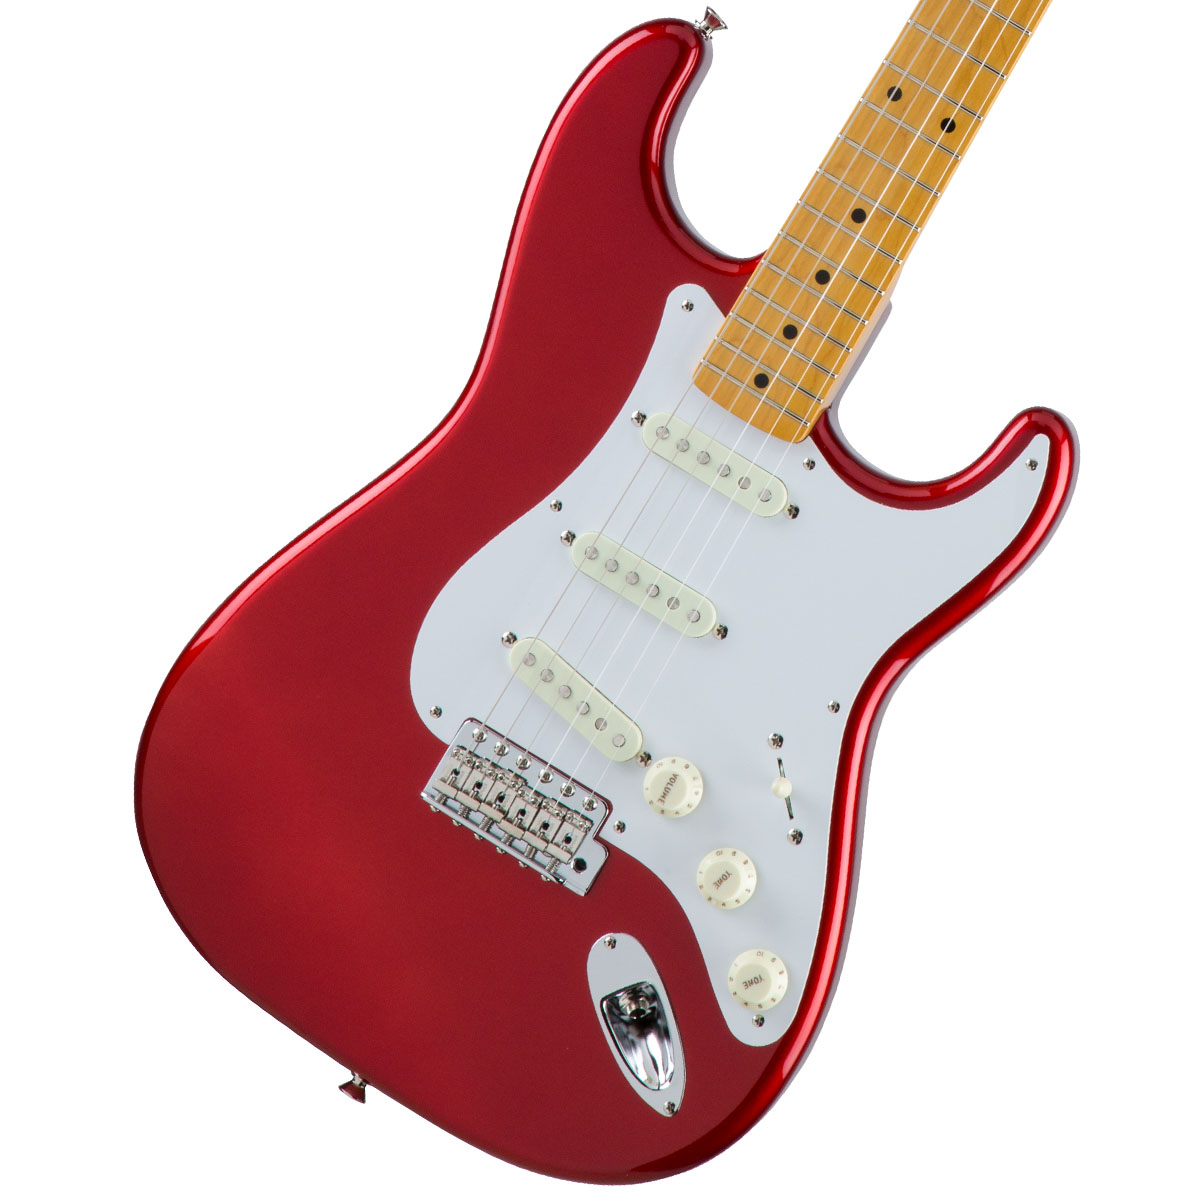 Fender / Made in Japan Traditional 50s Stratocaster Maple Fingerboard Candy Apple Red 【お取り寄せ商品】《カスタムショップのお手入れ用品を進呈/+671038200》